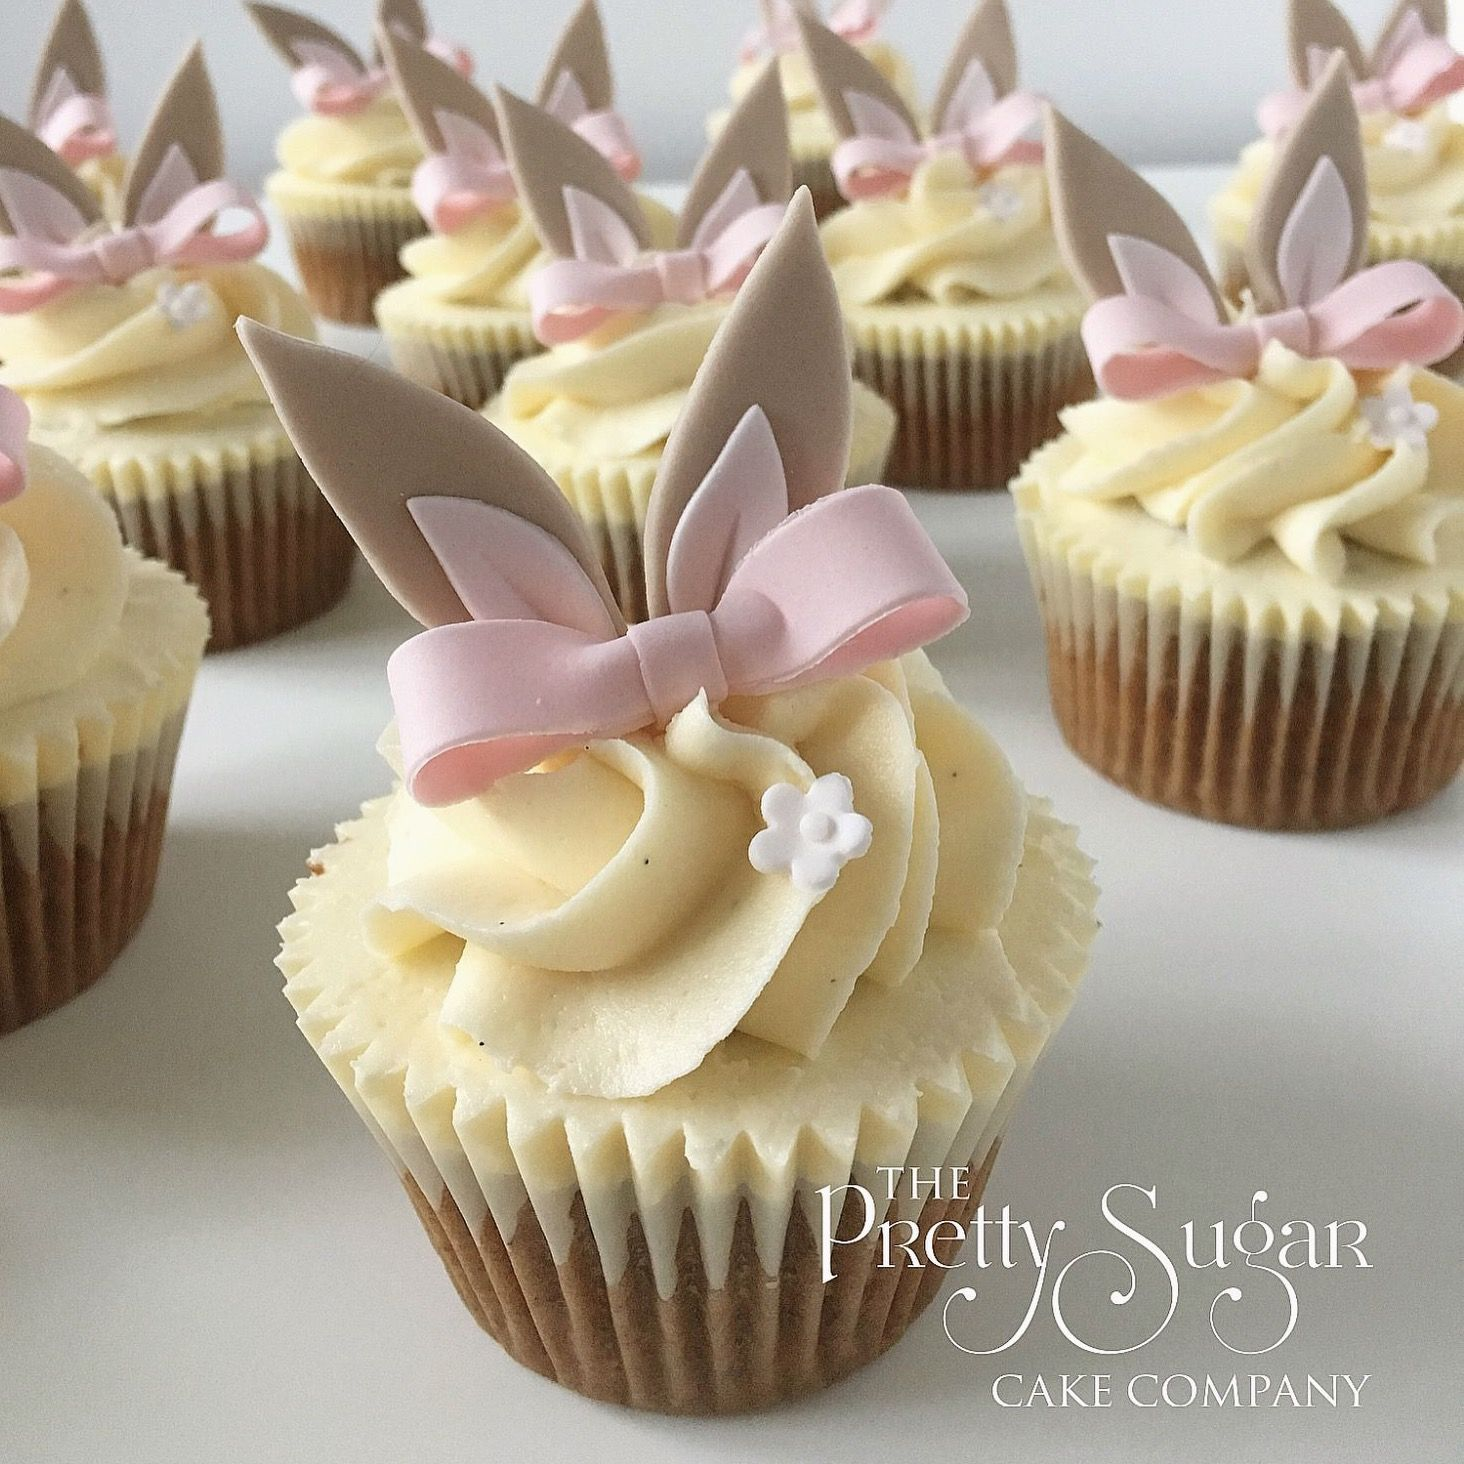 Flopsy Bunny cupcakes in 2020 (With images) | Savoury cake ...